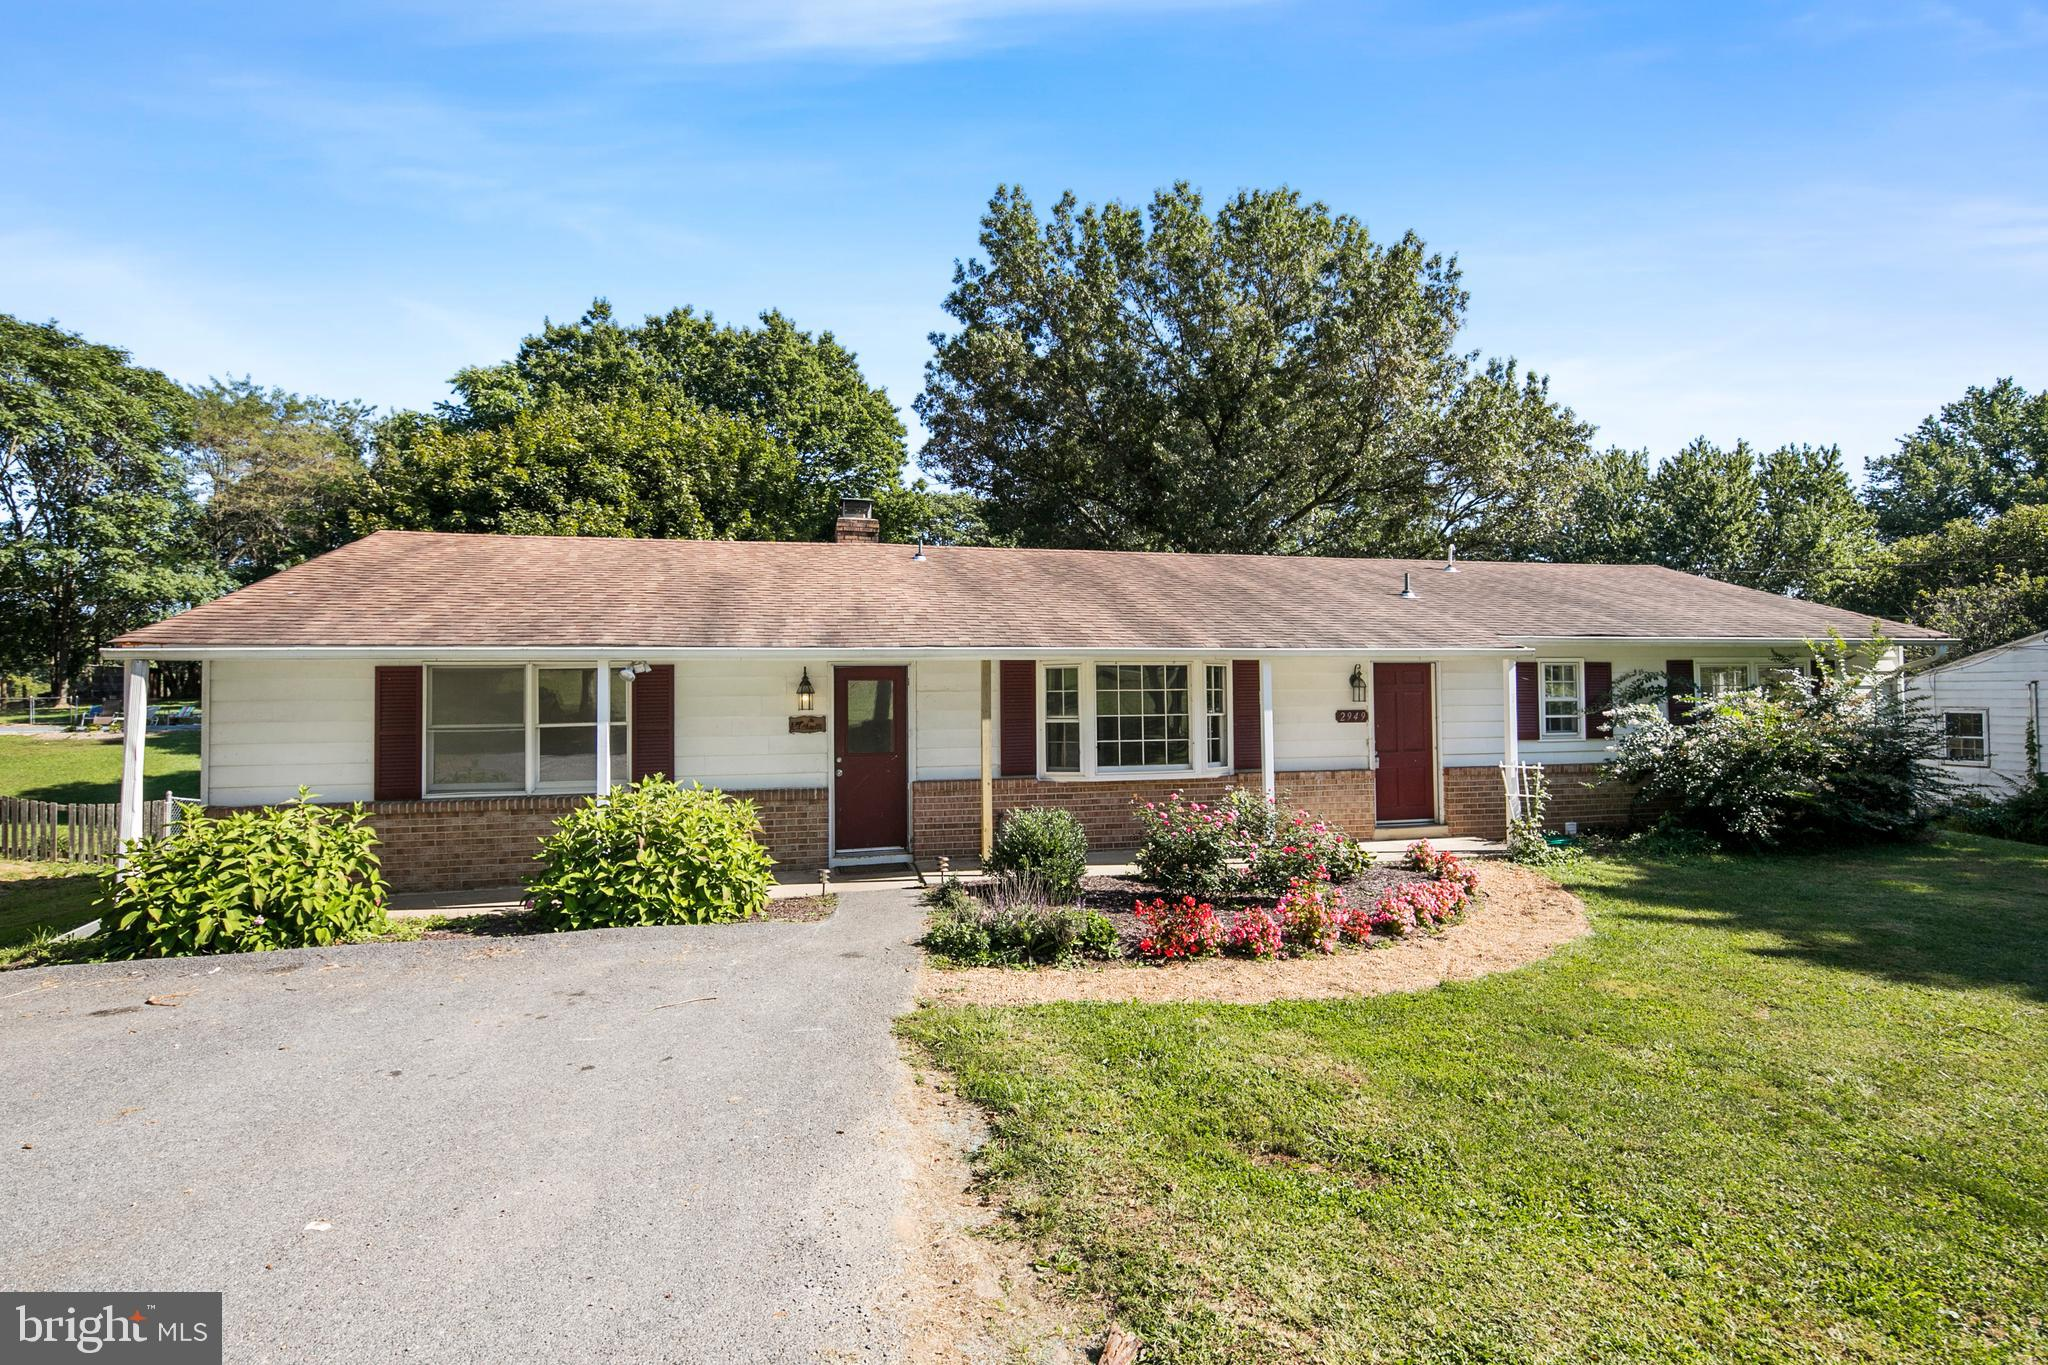 Potential doesn't even begin to describe this fantastic rancher located just minutes off 270 and wit